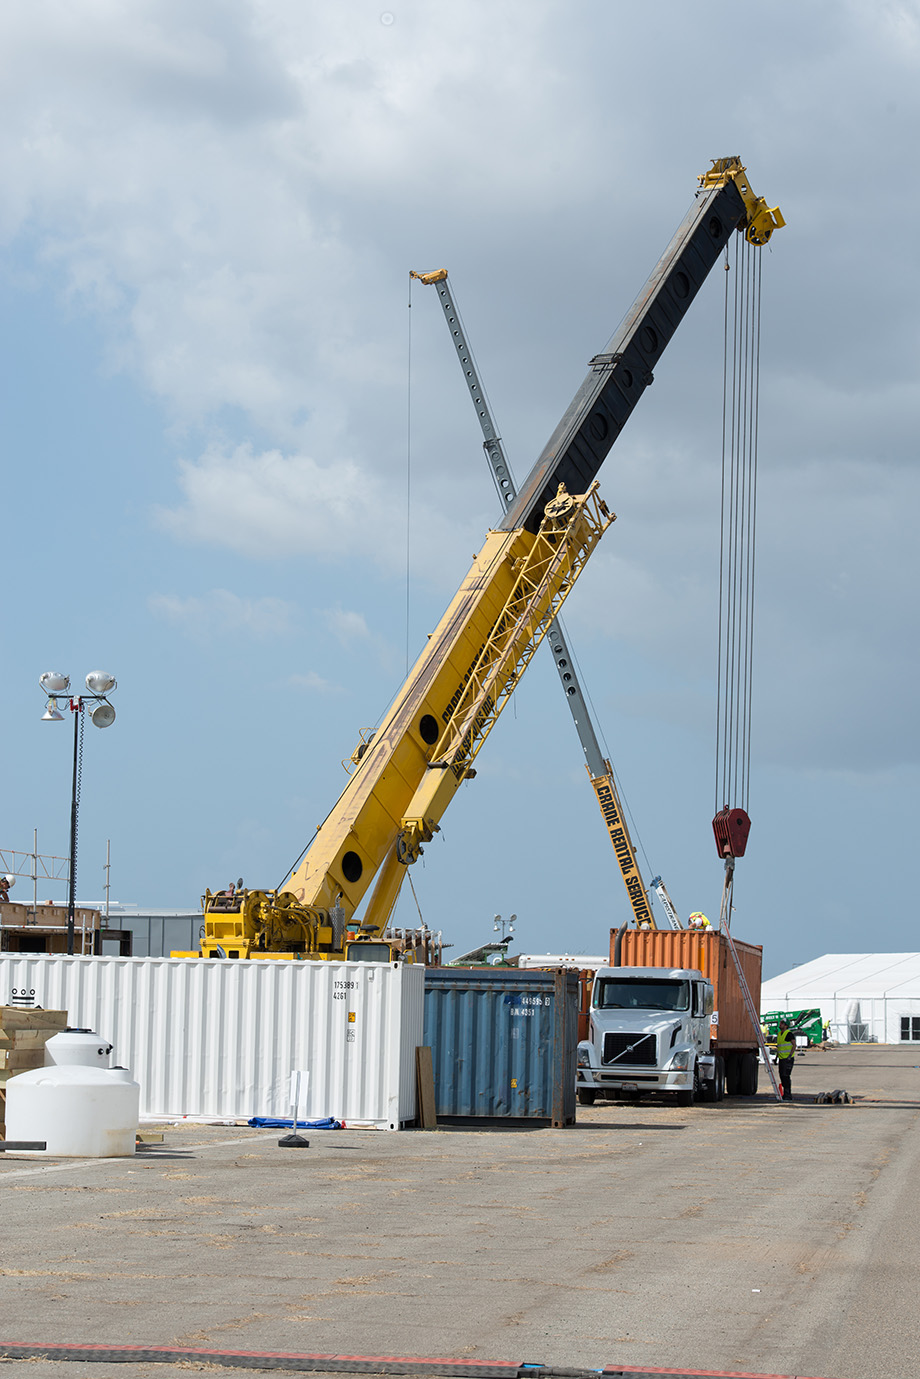 Crane lifting off the container.